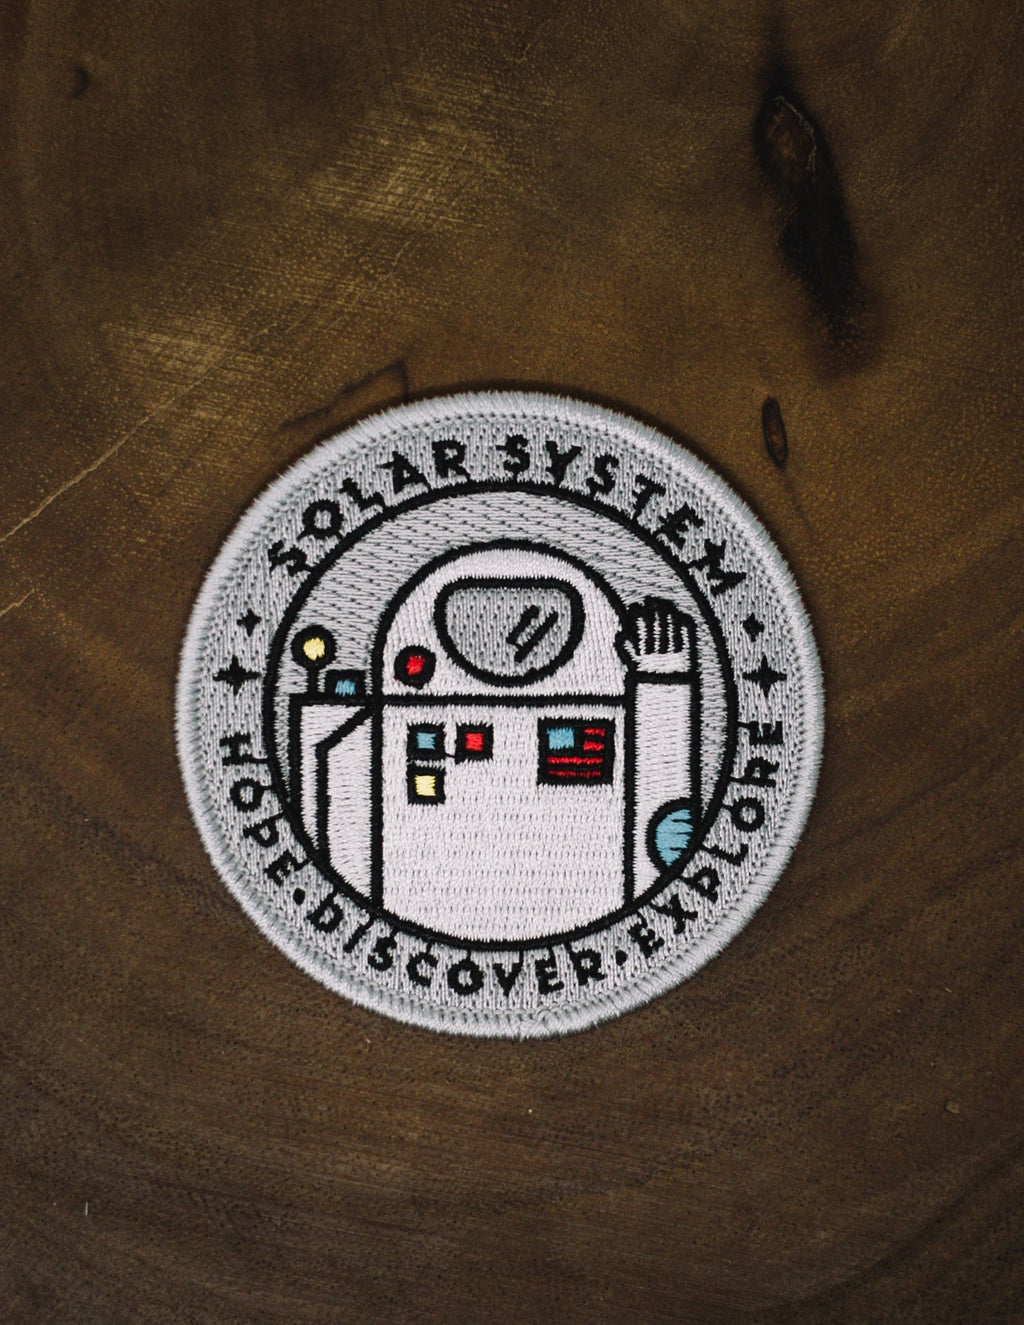 Astronaut Space Explorer's Patch - The Parks Apparel